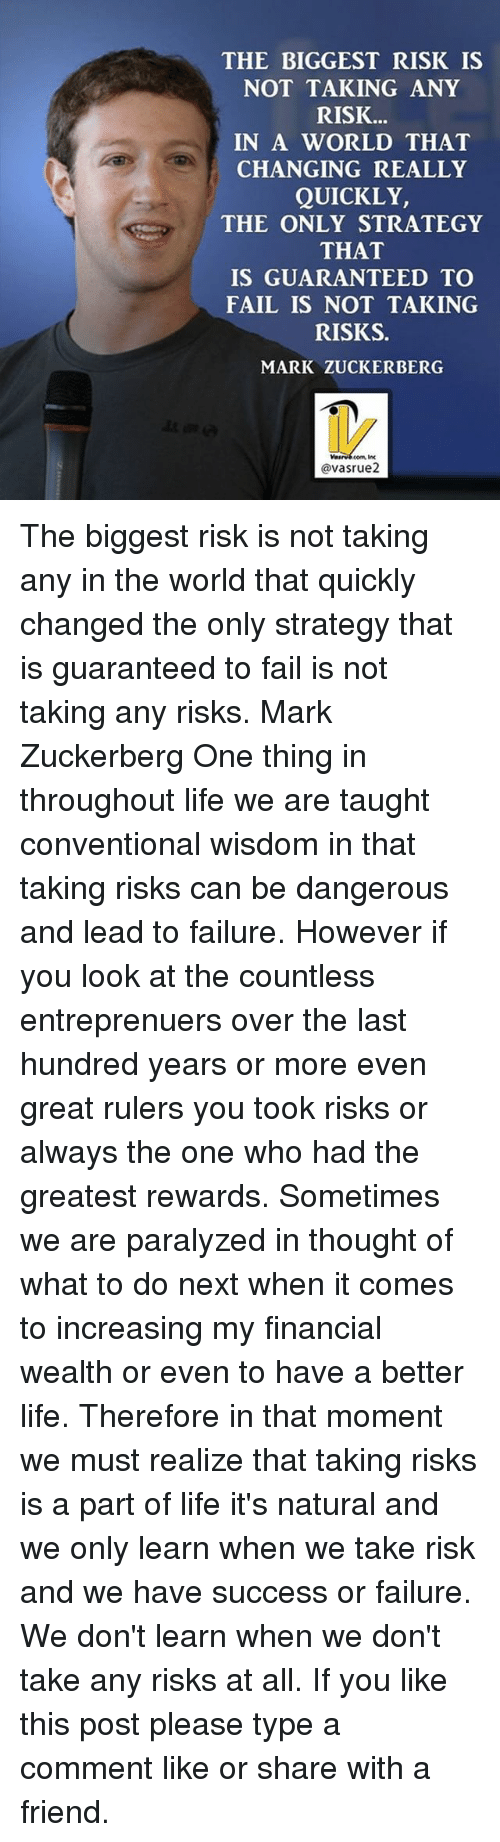 Fail, Life, and Mark Zuckerberg: THE BIGGEST RISK IS  NOT TAKING ANY  RISK...  IN A WORLD THAT  CHANGING REALLY  QUICKLY,  THE ONLY STRATEGY  THAT  IS GUARANTEED TO  FAIL IS NOT TAKING  RISKS.  MARK ZUCKERBERG  @vasrue2 The biggest risk is not taking any in the world that quickly changed the only strategy that is guaranteed to fail is not taking any risks. Mark Zuckerberg One thing in throughout life we are taught conventional wisdom in that taking risks can be dangerous and lead to failure. However if you look at the countless entreprenuers over the last hundred years or more even great rulers you took risks or always the one who had the greatest rewards. Sometimes we are paralyzed in thought of what to do next when it comes to increasing my financial wealth or even to have a better life. Therefore in that moment we must realize that taking risks is a part of life it's natural and we only learn when we take risk and we have success or failure. We don't learn when we don't take any risks at all. If you like this post please type a comment like or share with a friend.